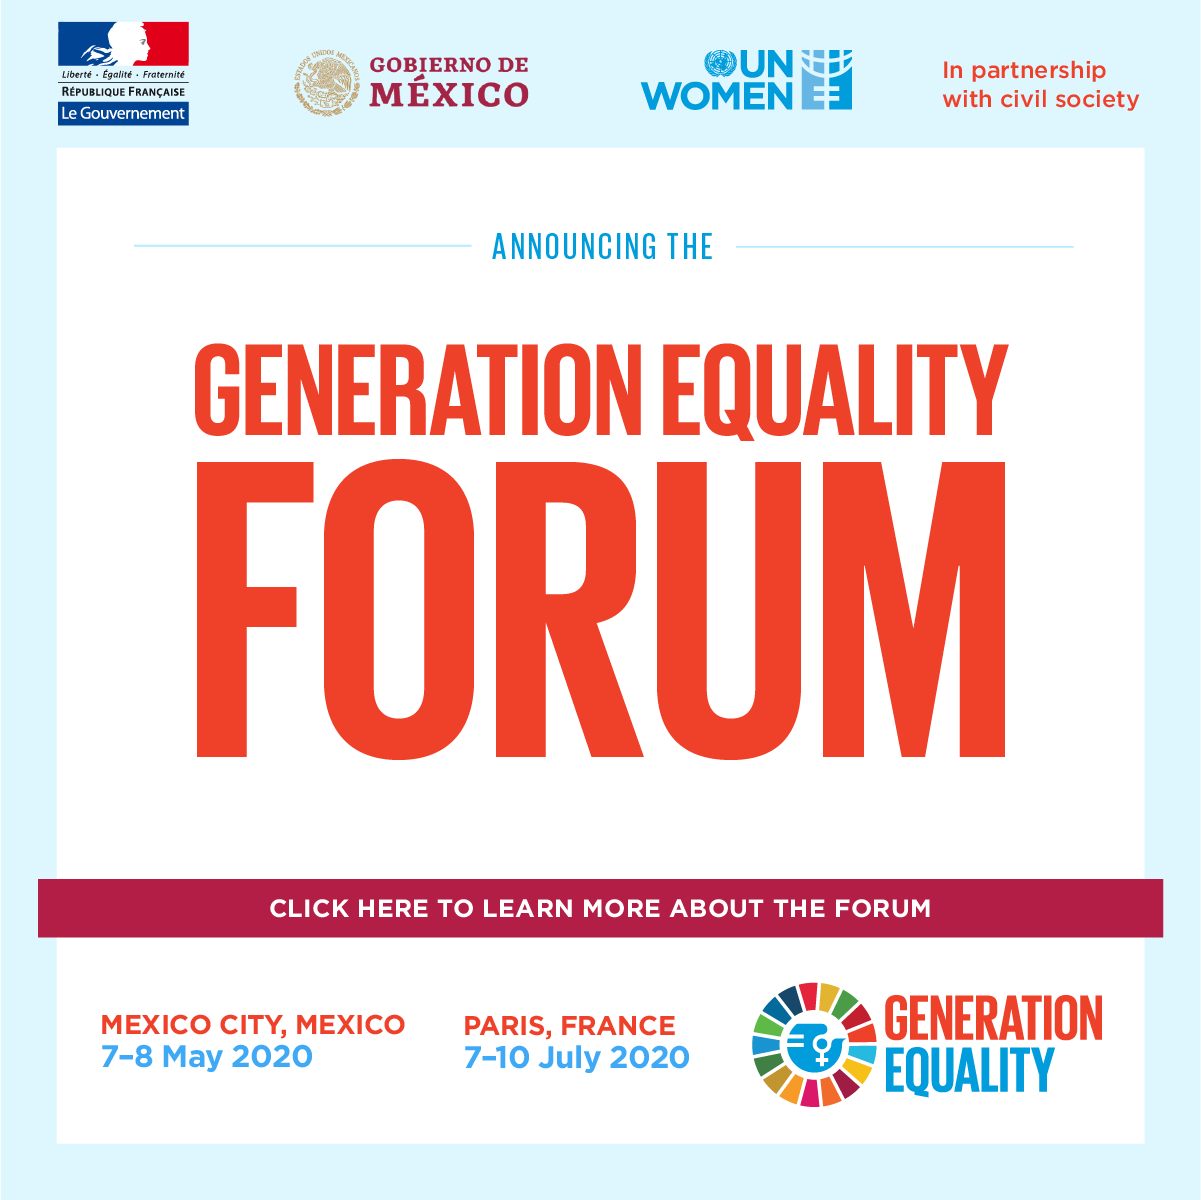 Save the date: Generation Equality Forum, Mexico City 7-8 May 2020; France 7-10 July 2020. Click for more information